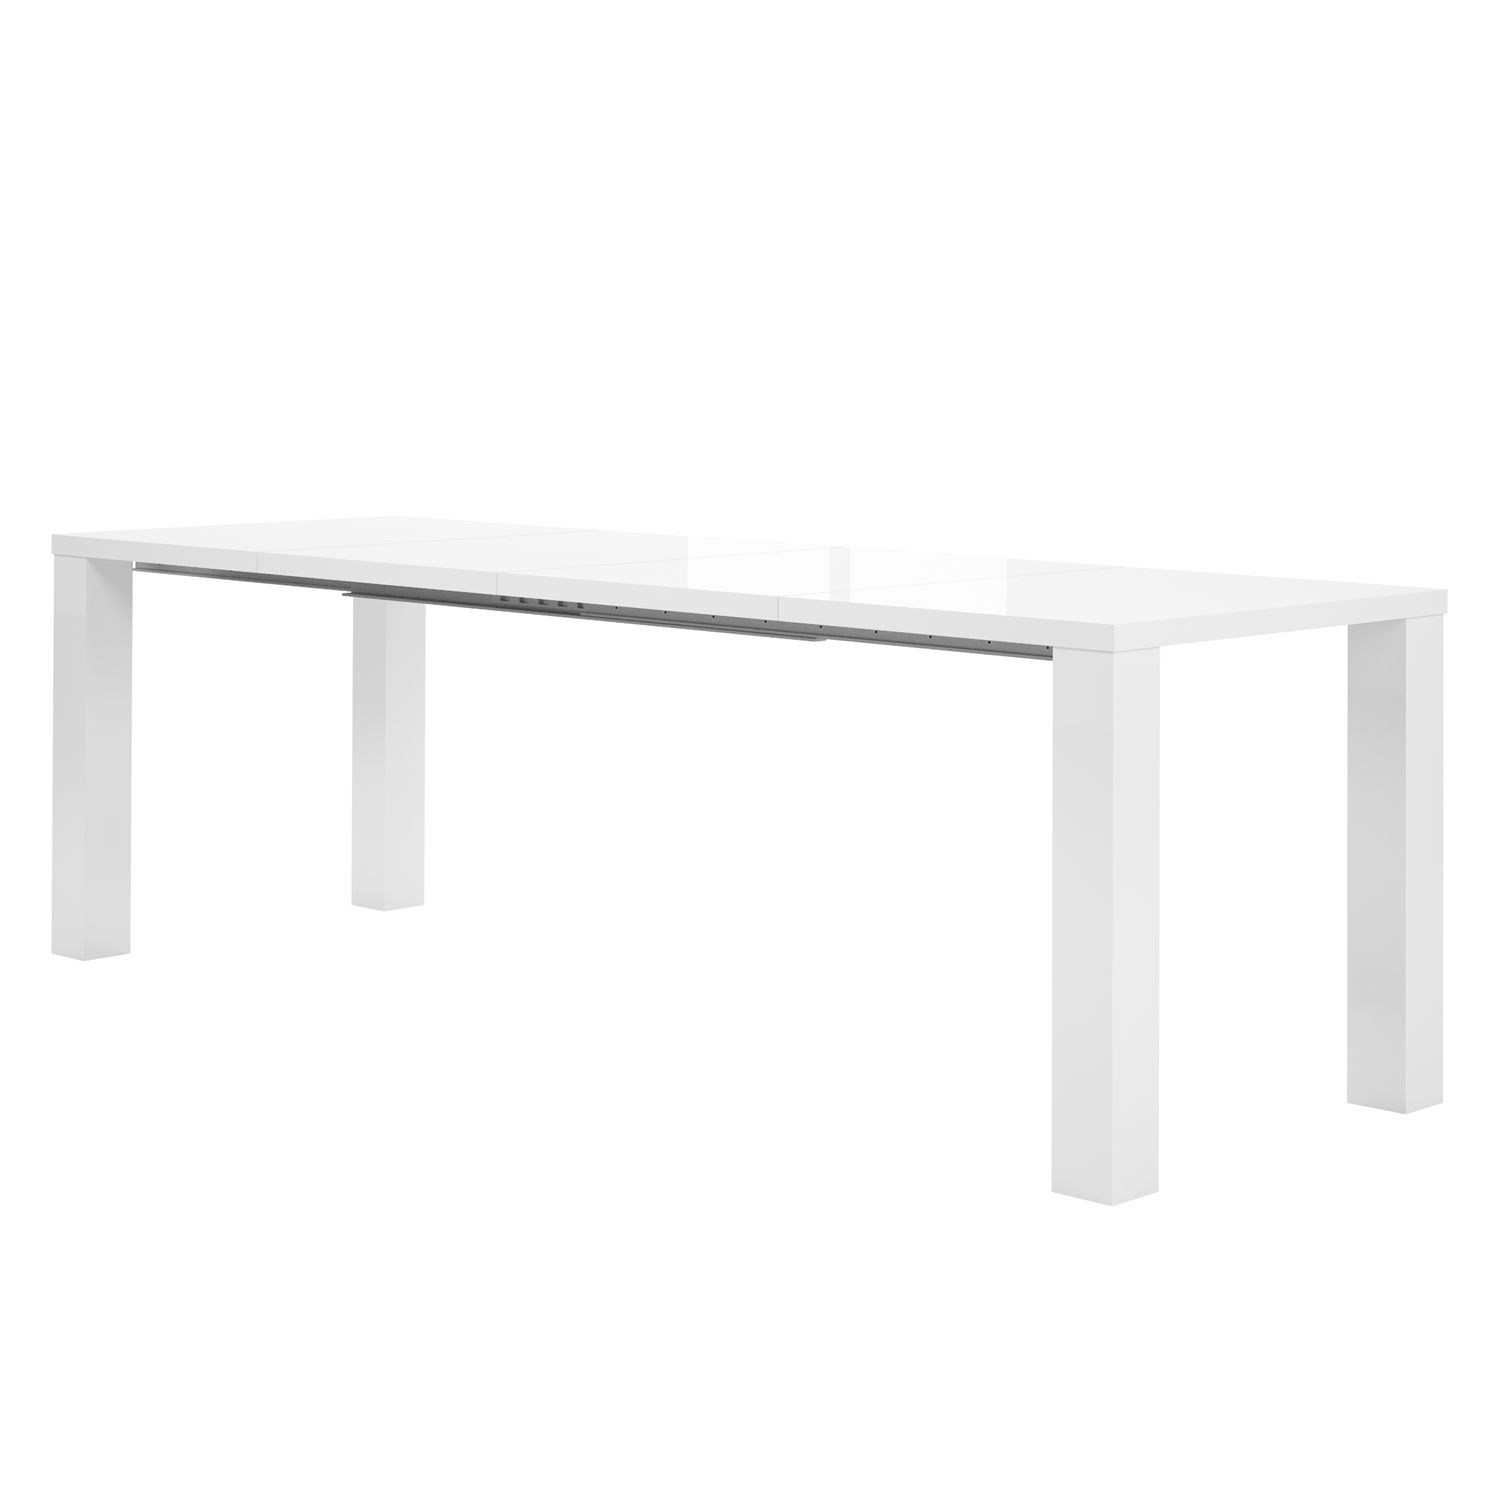 Table à manger Motion (extensible) - Blanc brillant, loftscape